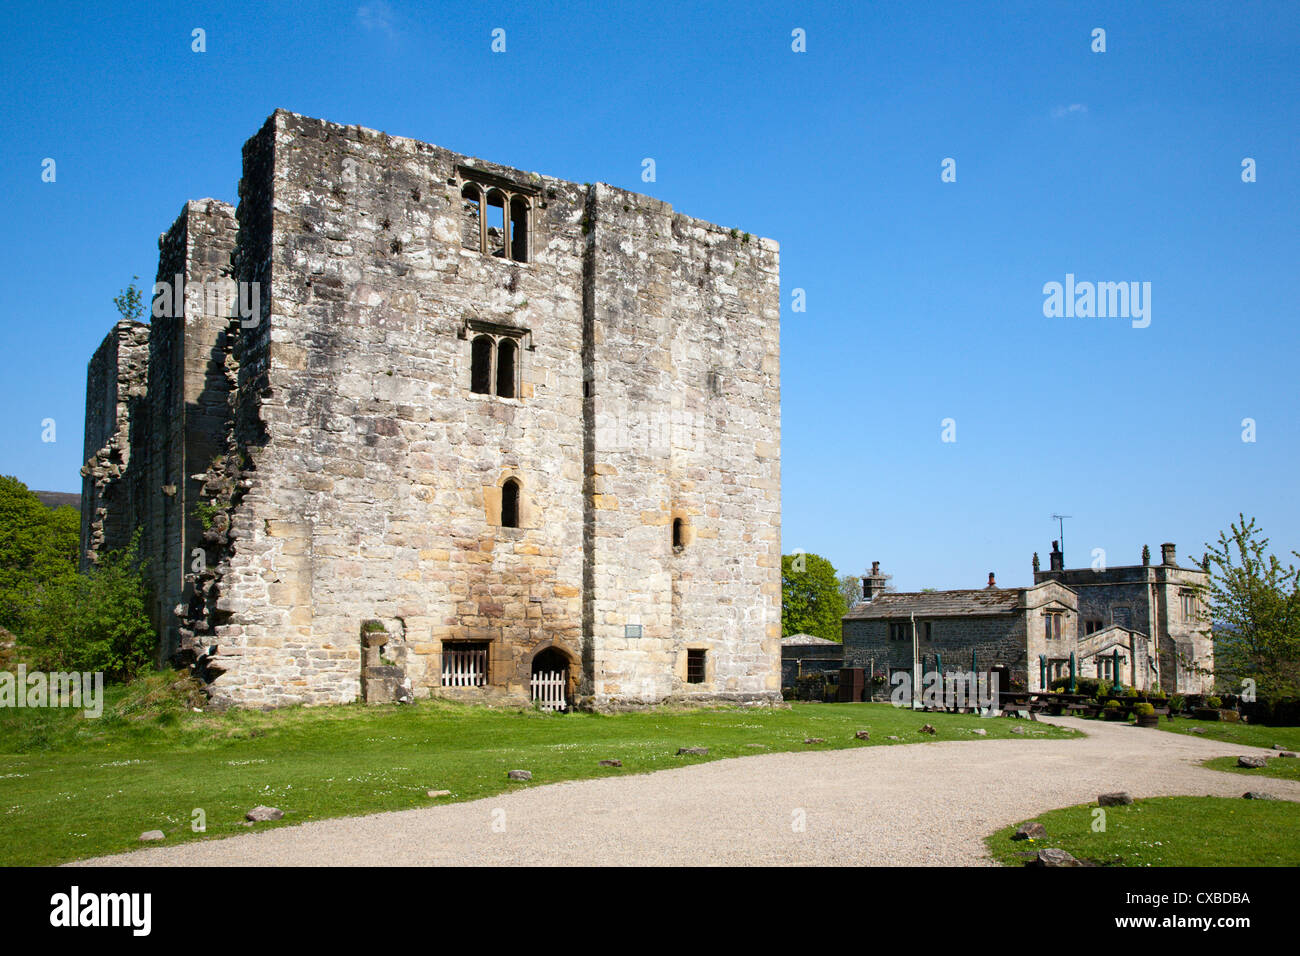 Barden Tower on the Bolton Abbey Estate, Wharfedale, Yorkshire Dales, Yorkshire, England, United Kingdom, Europe Stock Photo